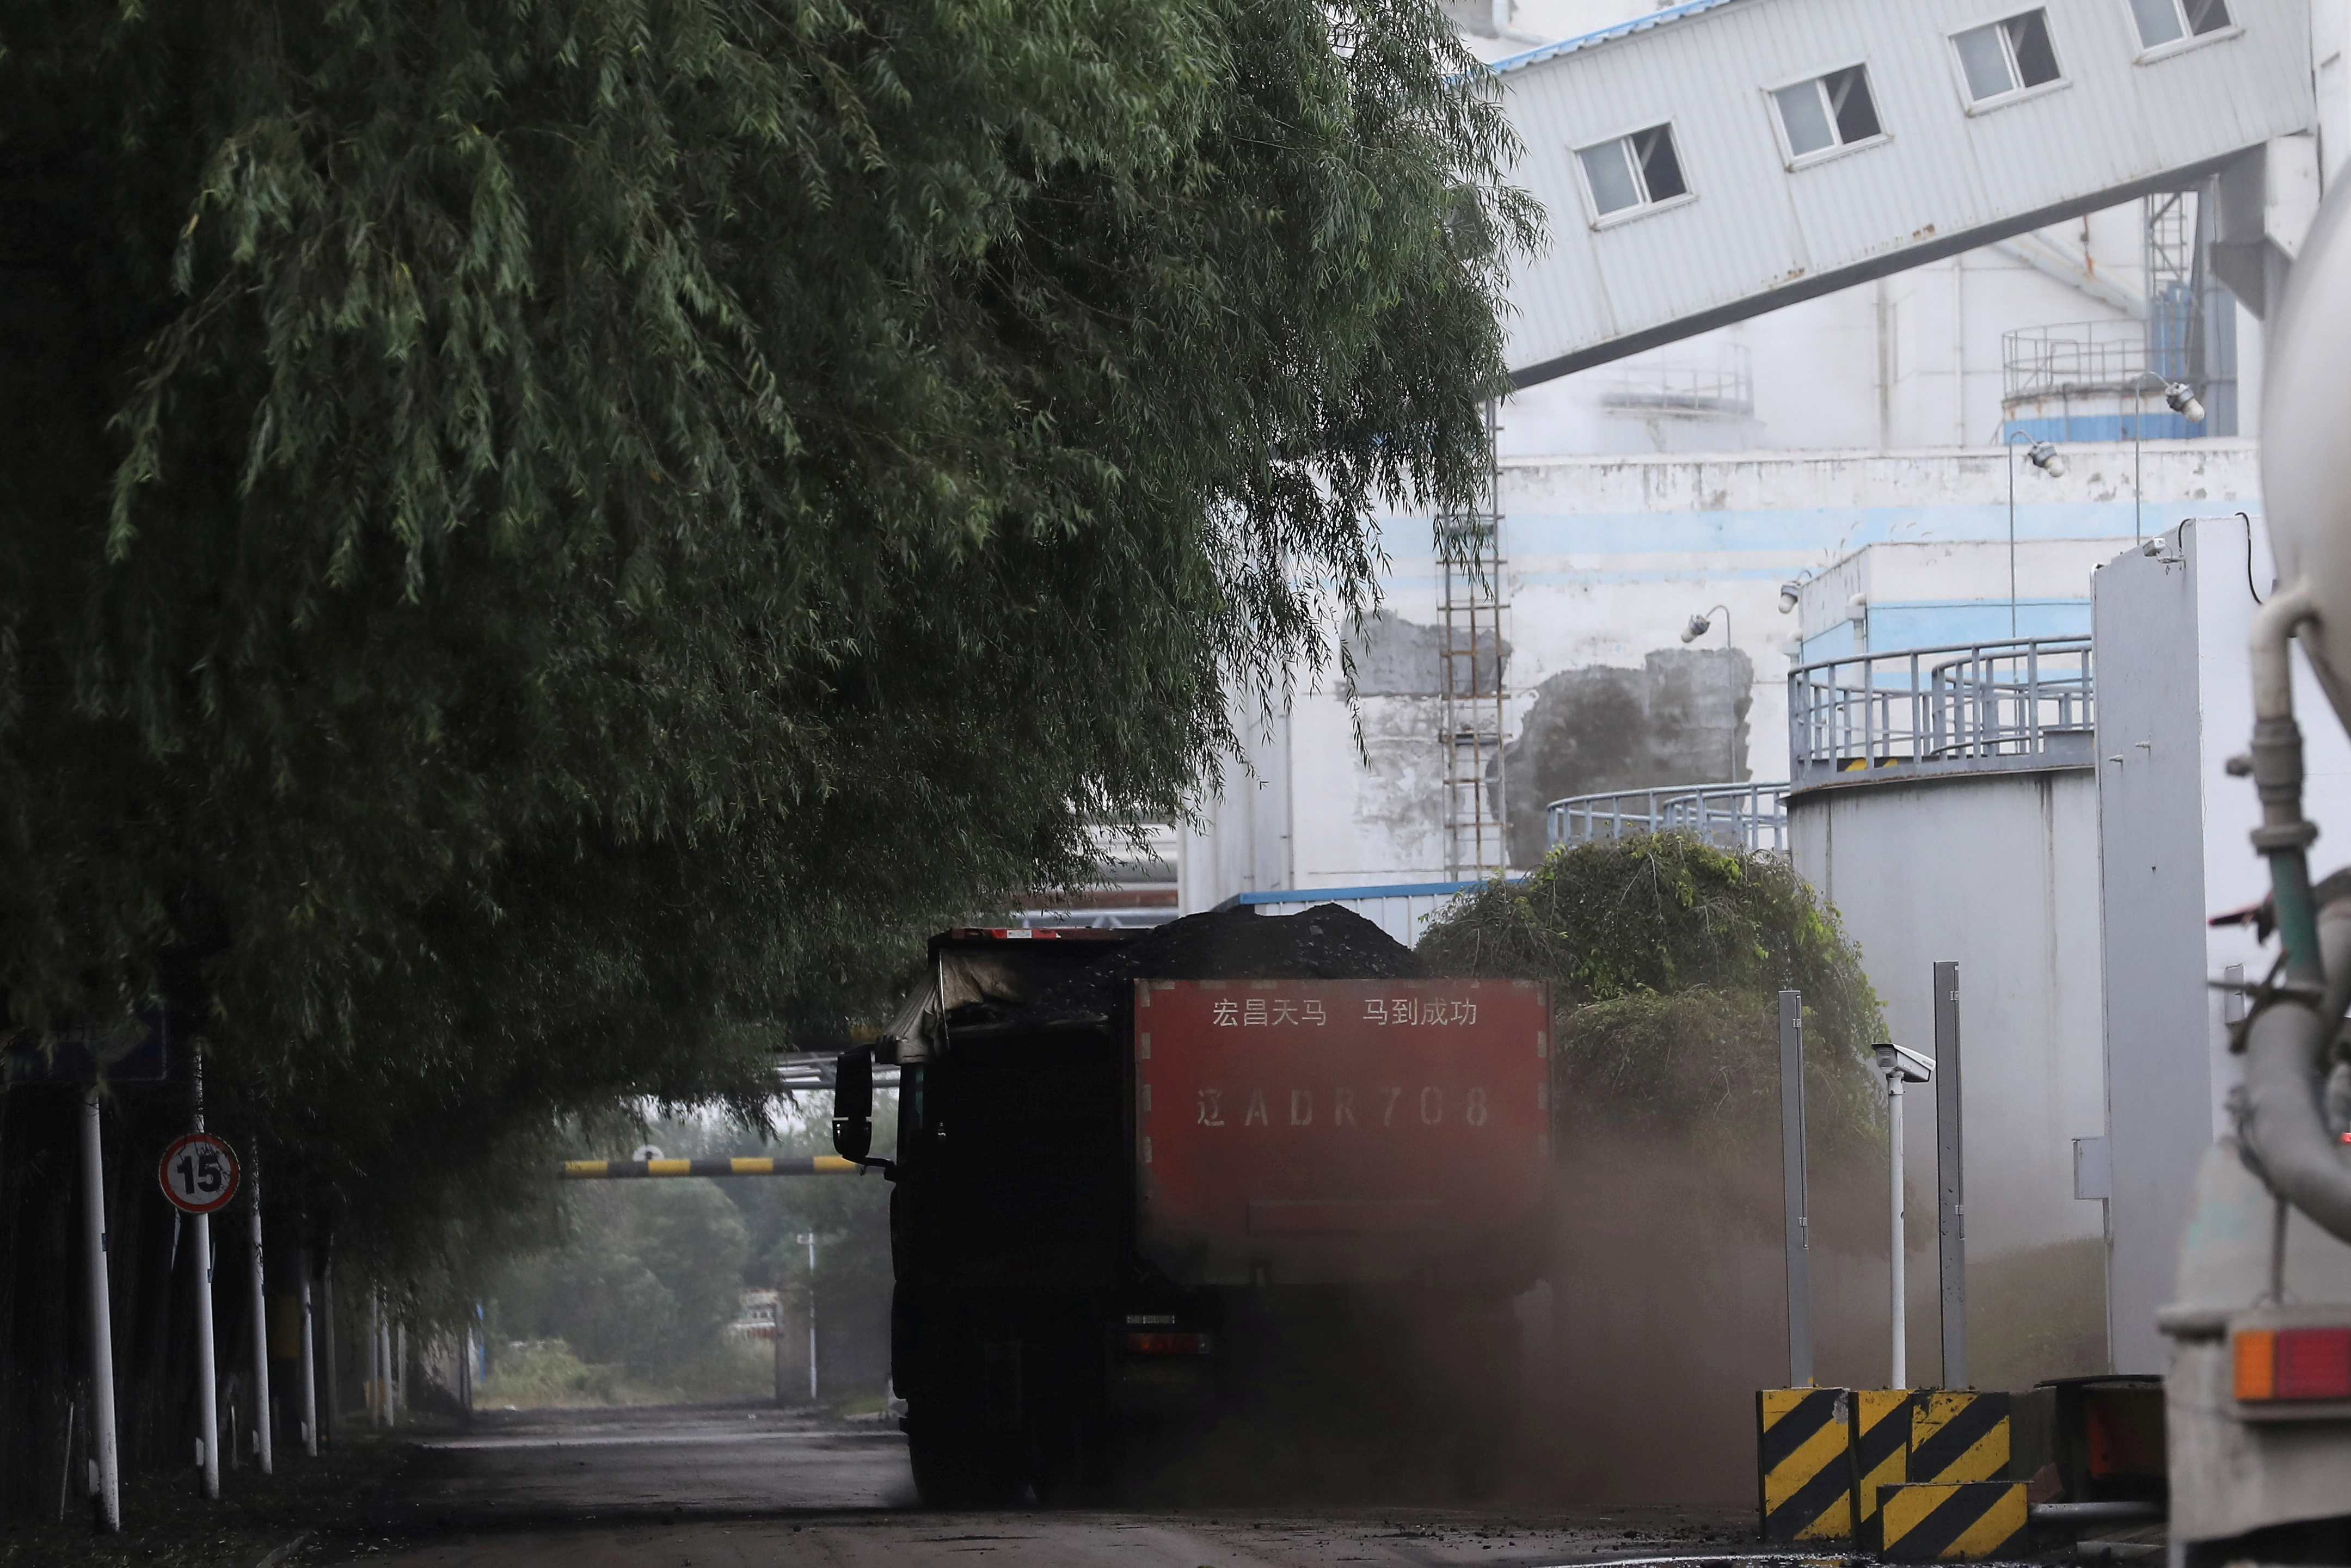 A truck transports coal at a coal-fired power plant in Shenyang, Liaoning province, China September 29, 2021. REUTERS/Tingshu Wang/File Photo